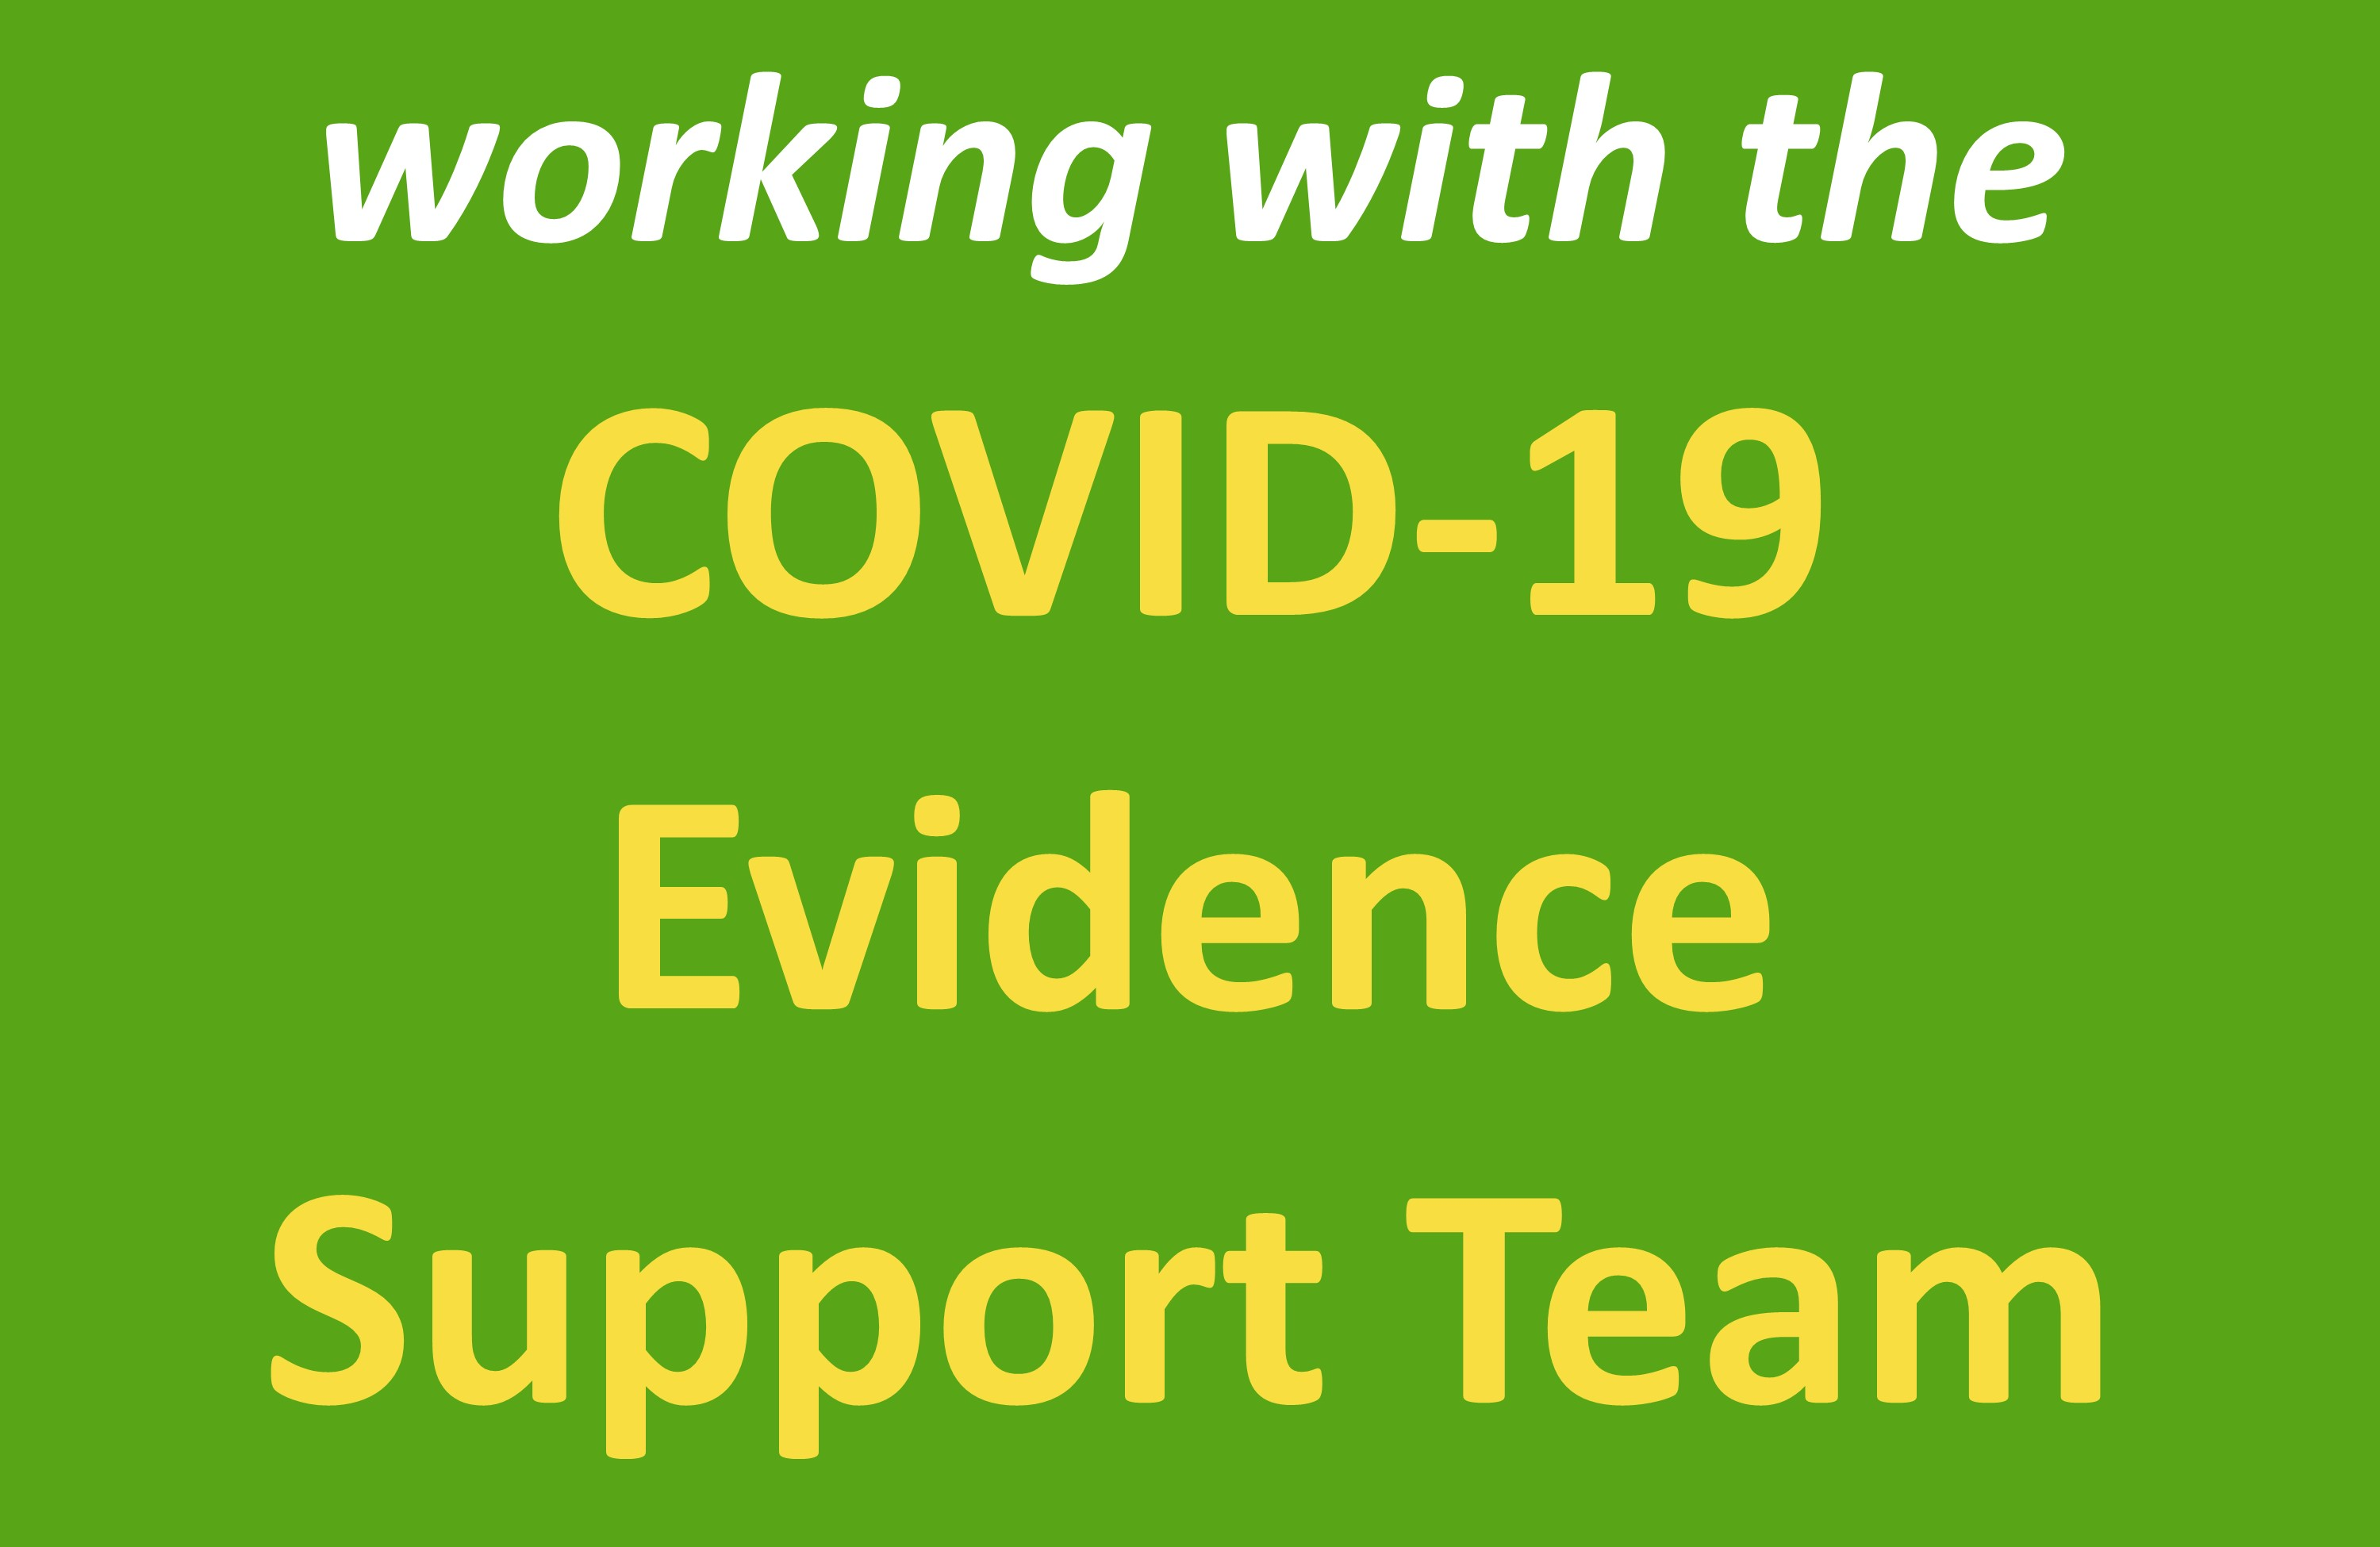 Working with the COVID-19 Evidence Support Team